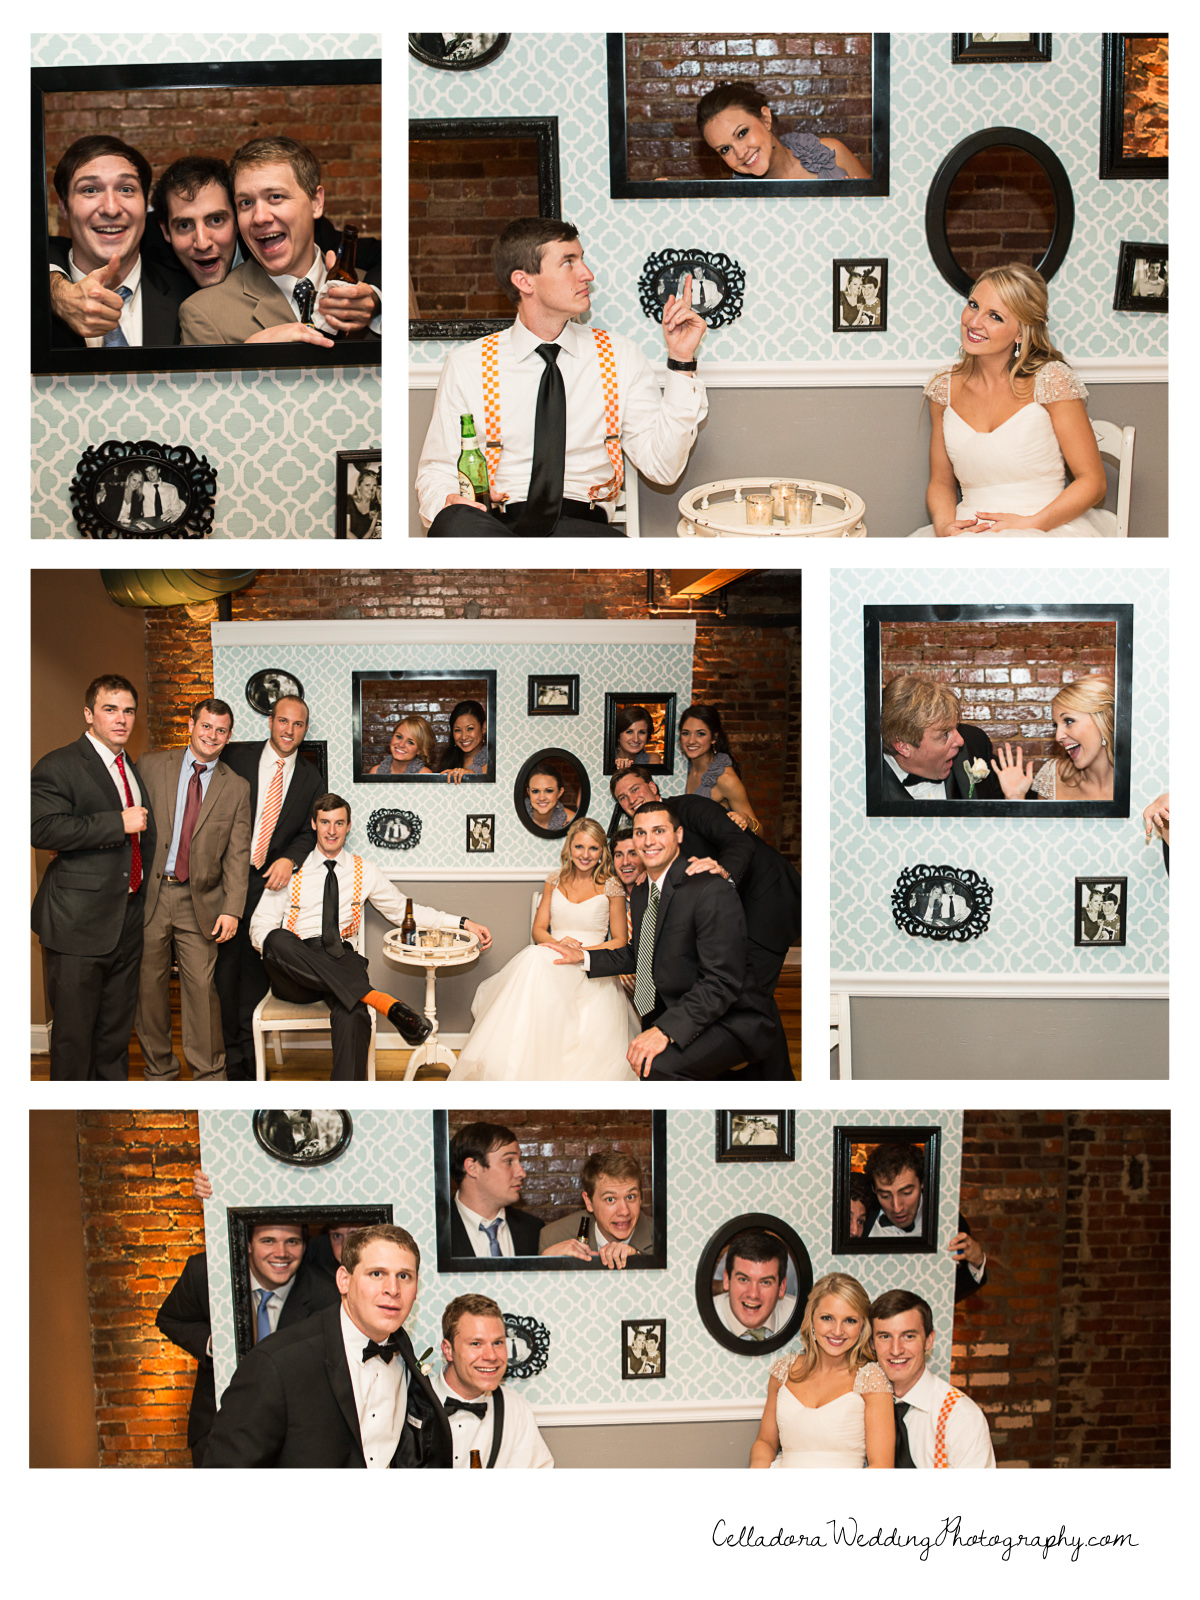 Wedding Reception Photobooth Wall Celladora Wedding Photography